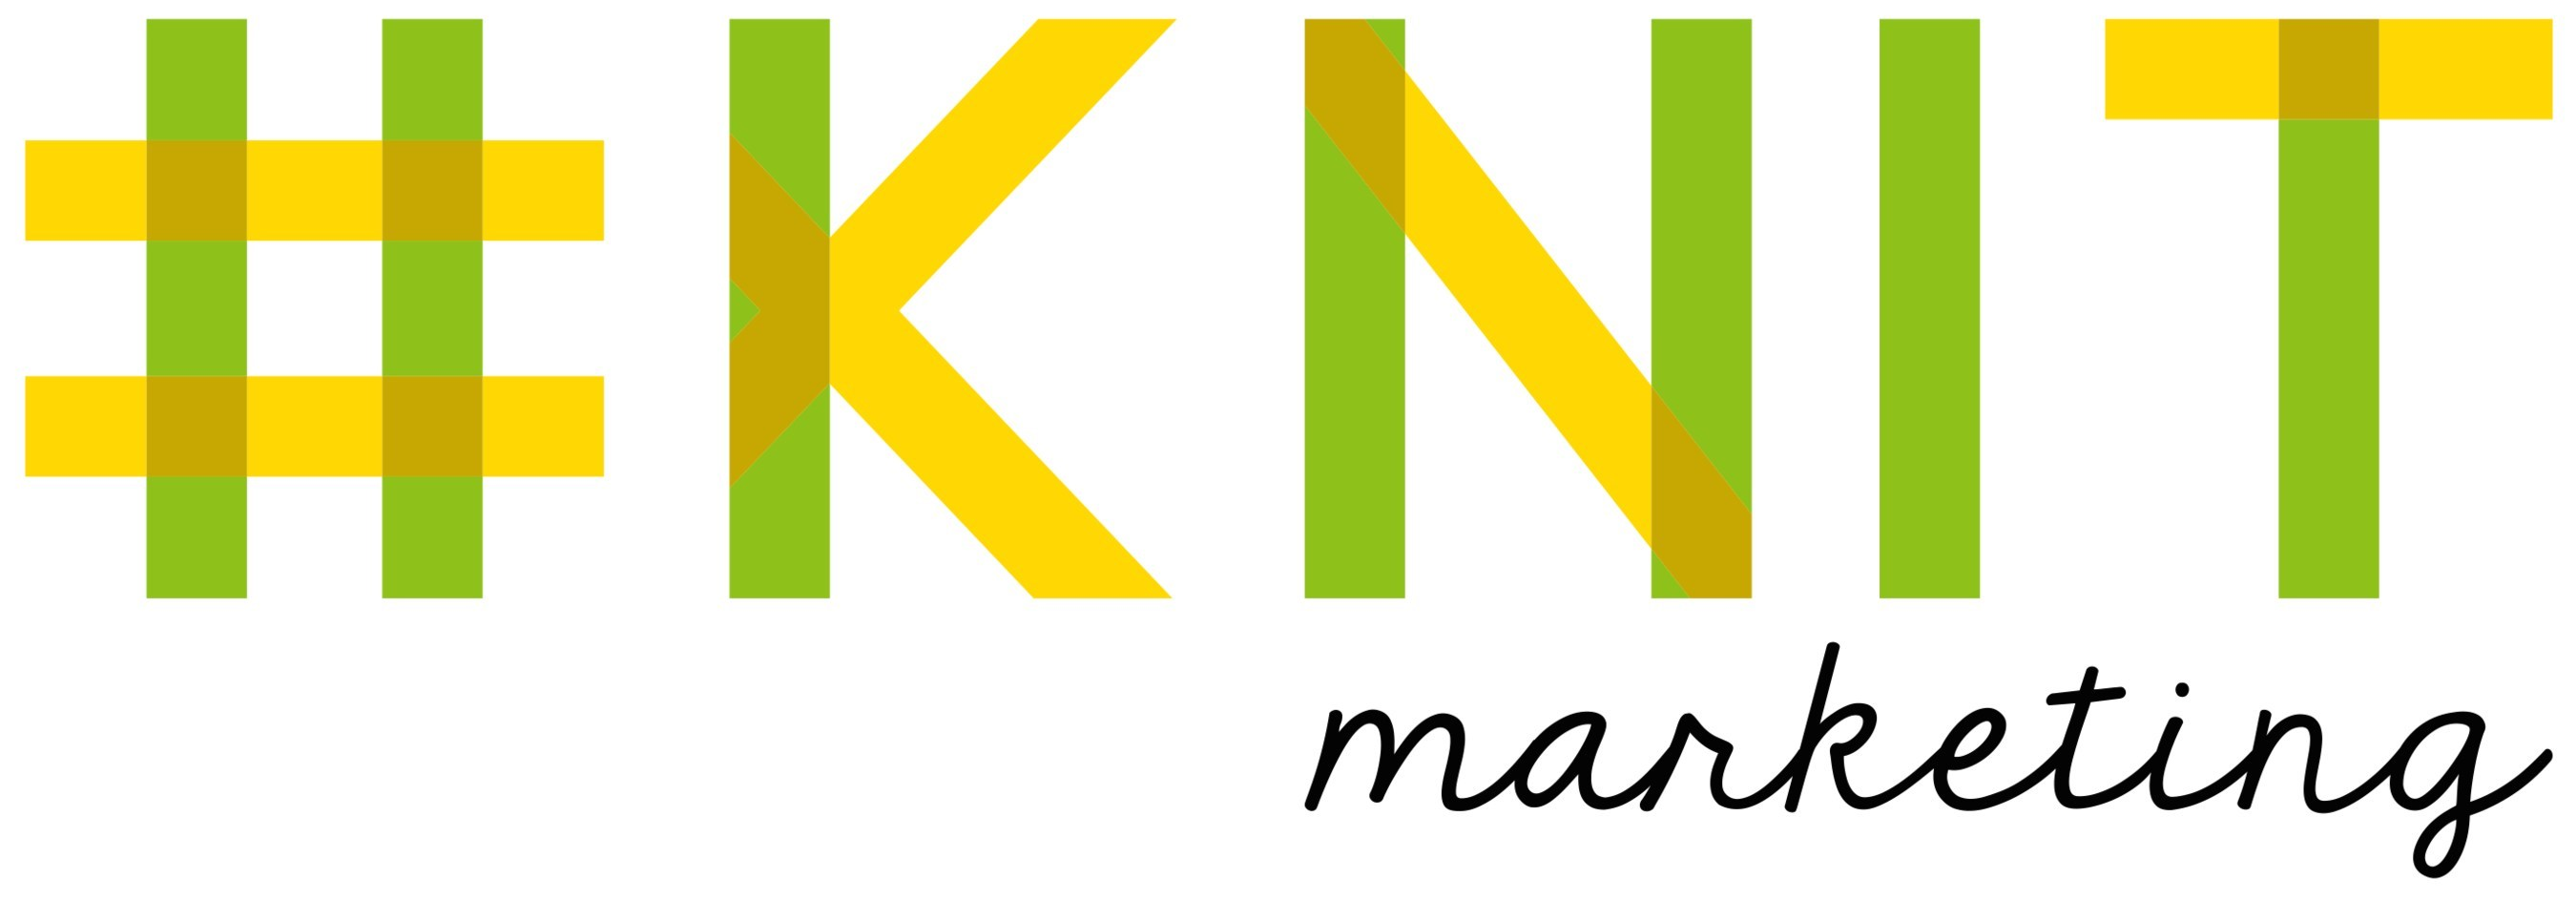 Founded by Rebecca Borough in 2016, Knit Marketing is a digital marketing company based in Los Angeles. Knit Marketing has helped numerous companies grow their social media presence by bringing together a diverse Gen Z and Millennial team to target specific markets and create unique viral content.